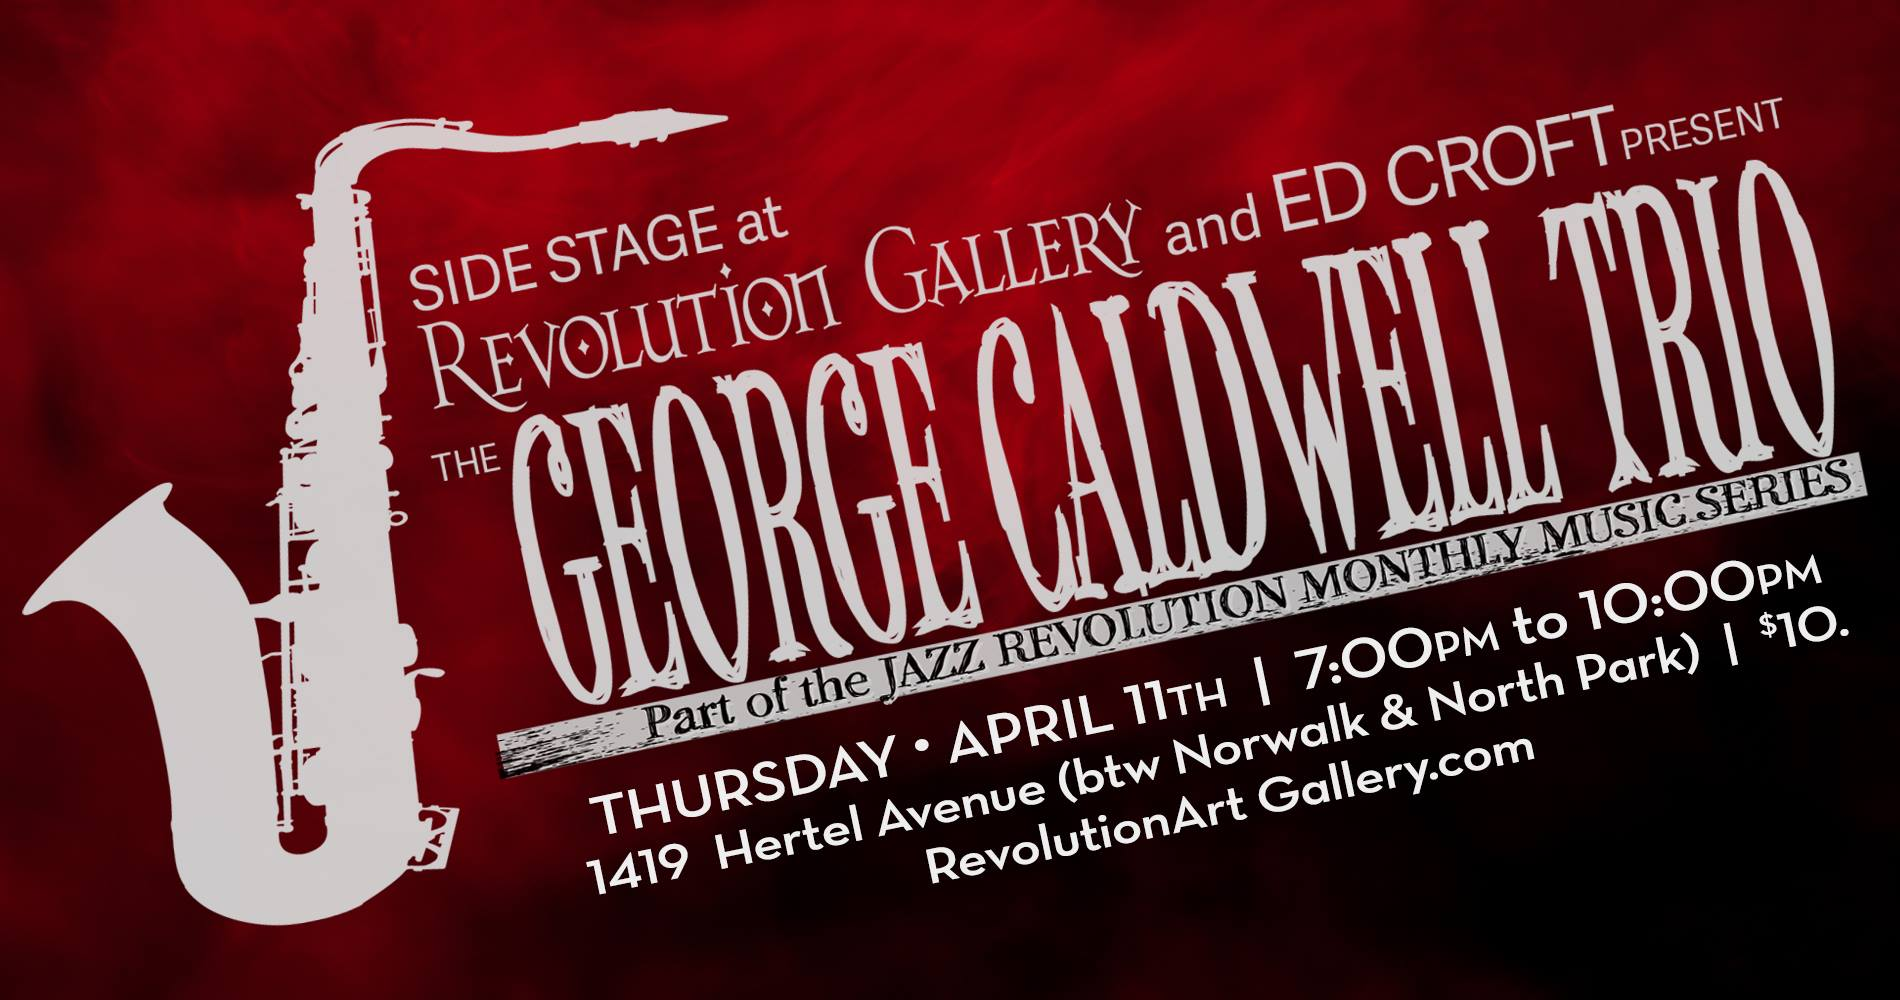 revolution-gallery-george-caldwell